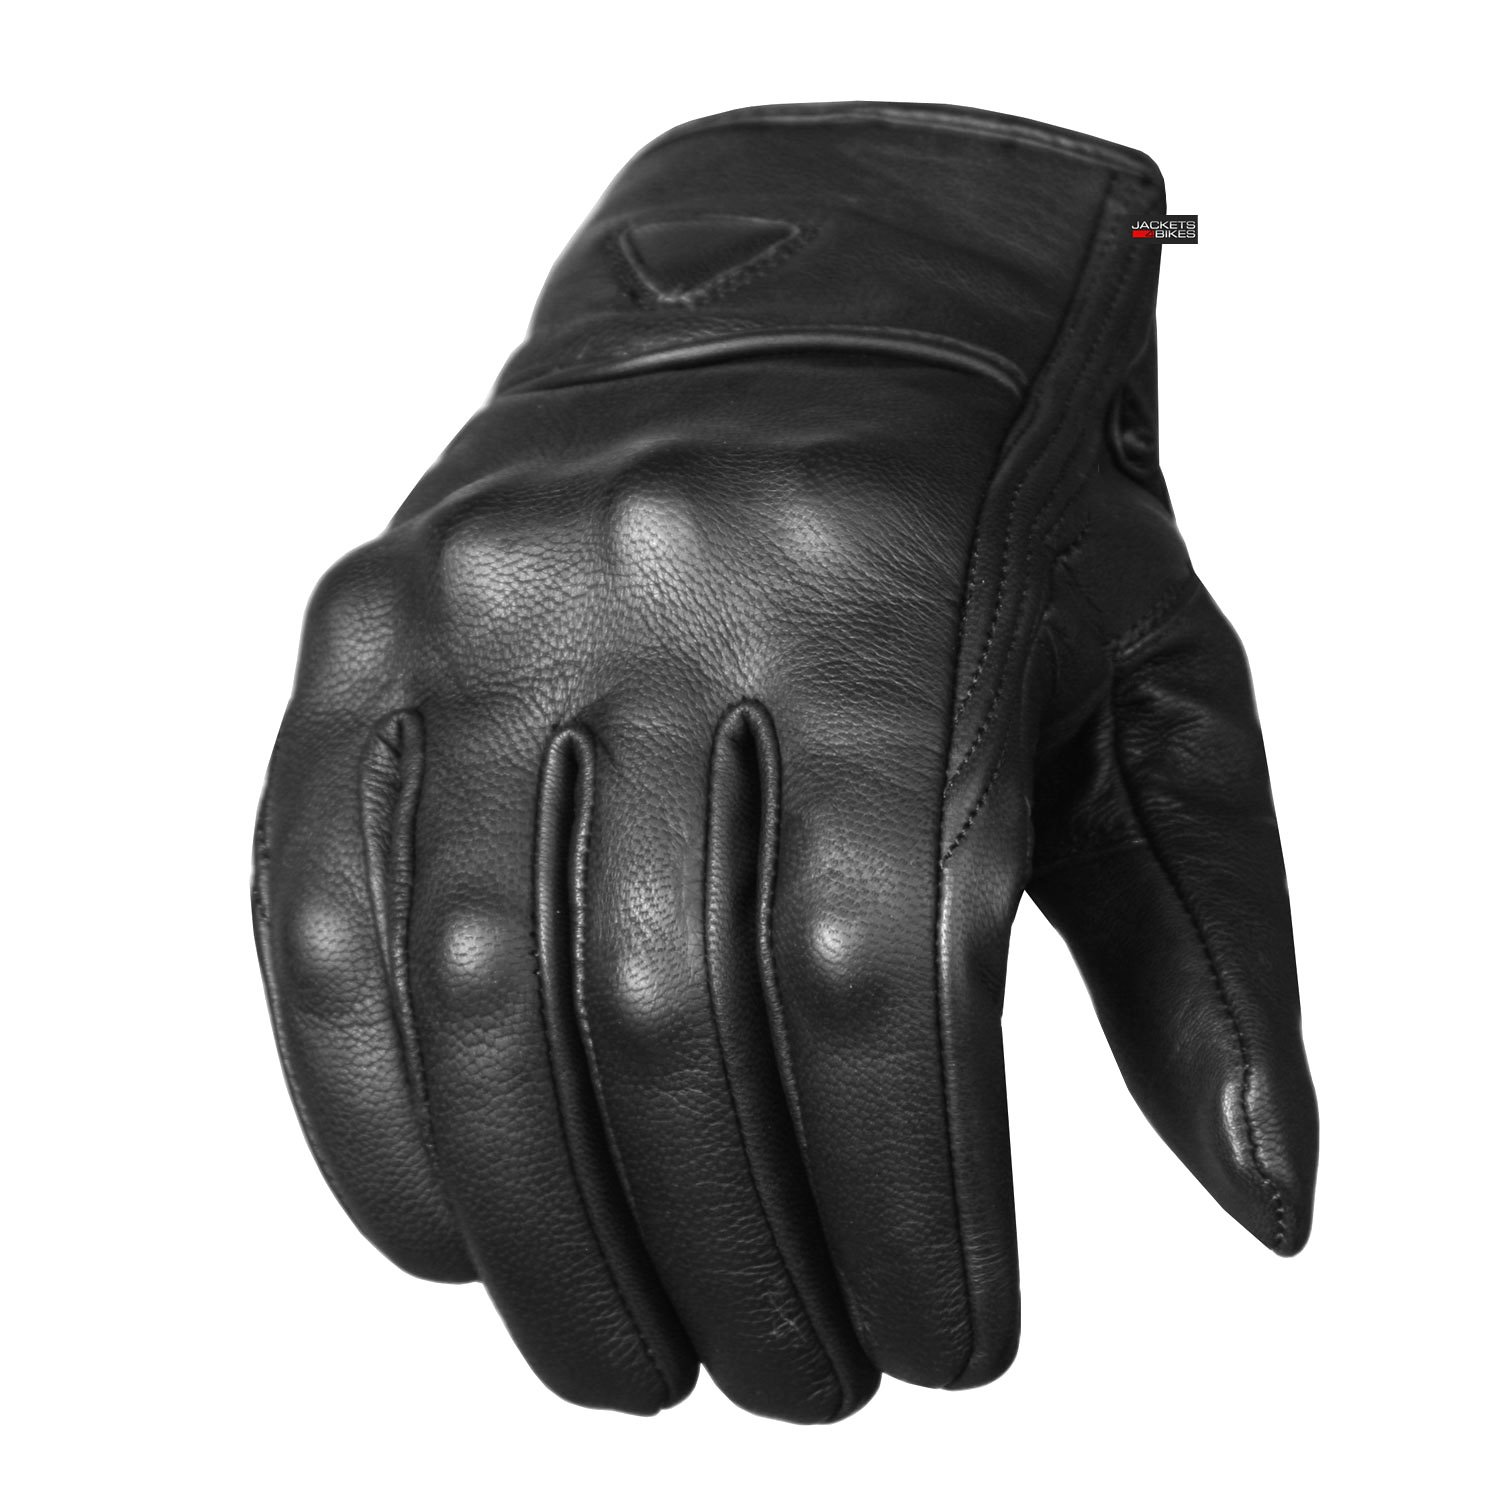 Men's Premium Leather Street Motorcycle Protective Cruiser Biker Gel Gloves